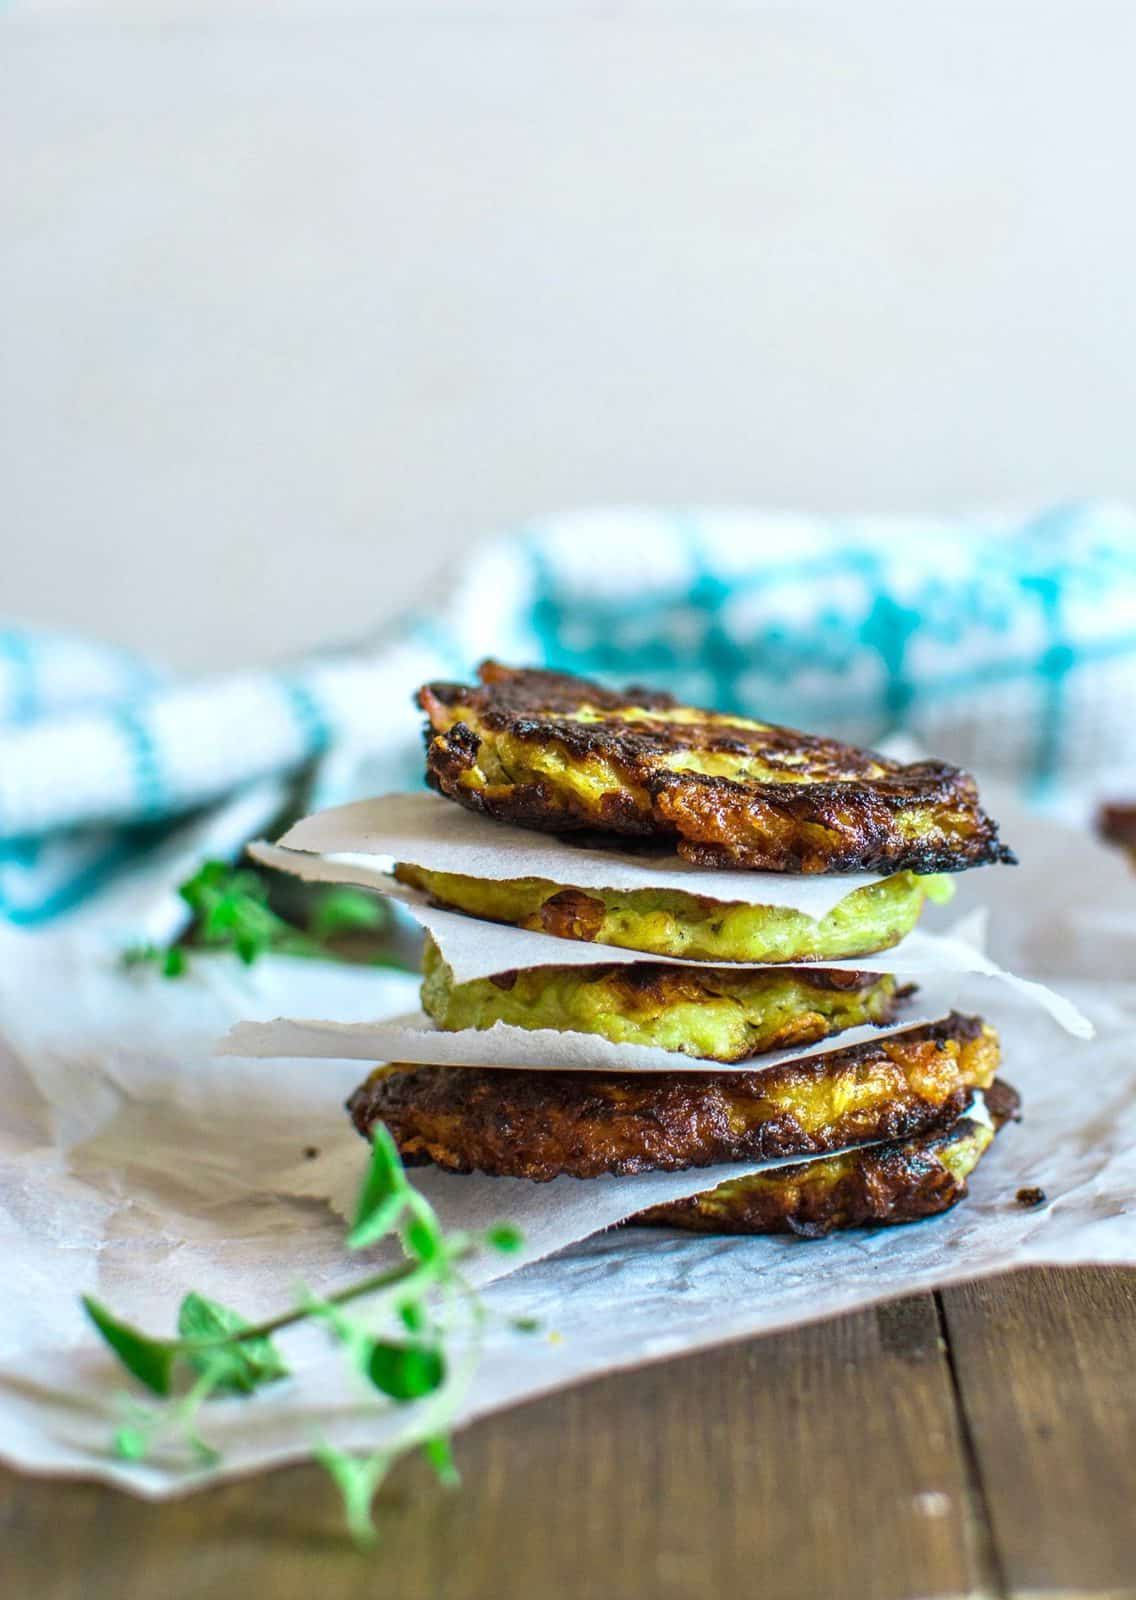 gluten free zucchini fritters stacked on top of each other with parchment paper in between on a brown wooden table with green herbs next to it